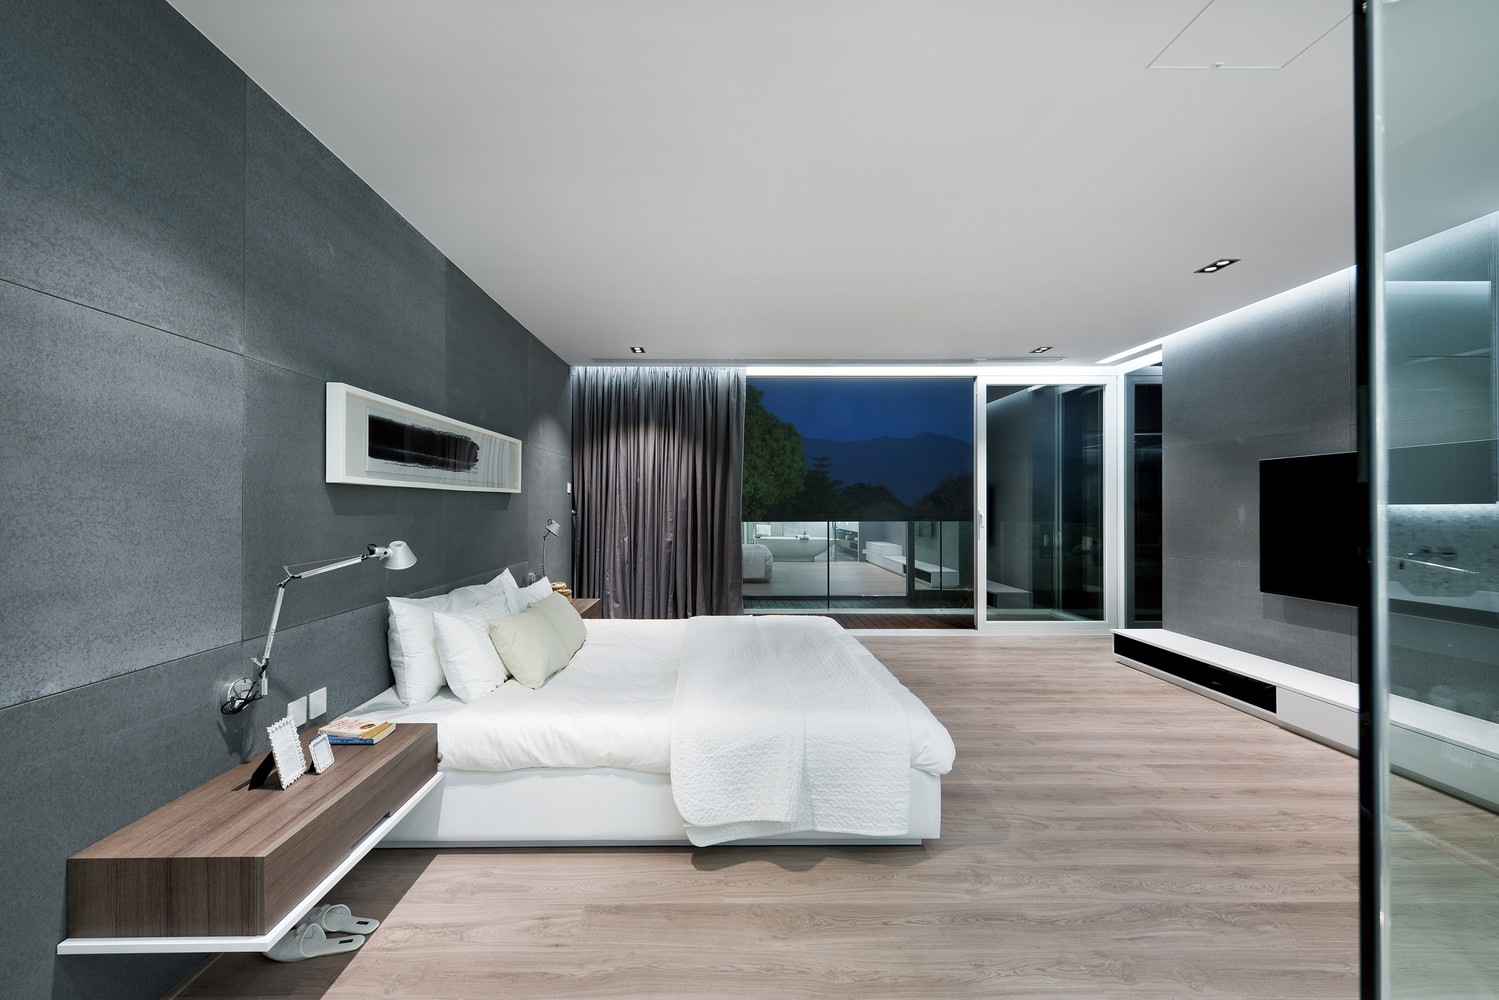 master bedroom Inspiring Master Bedrooms From the Best Interior Designers 90d5264dab802ea0ddee51d1d947e1e5